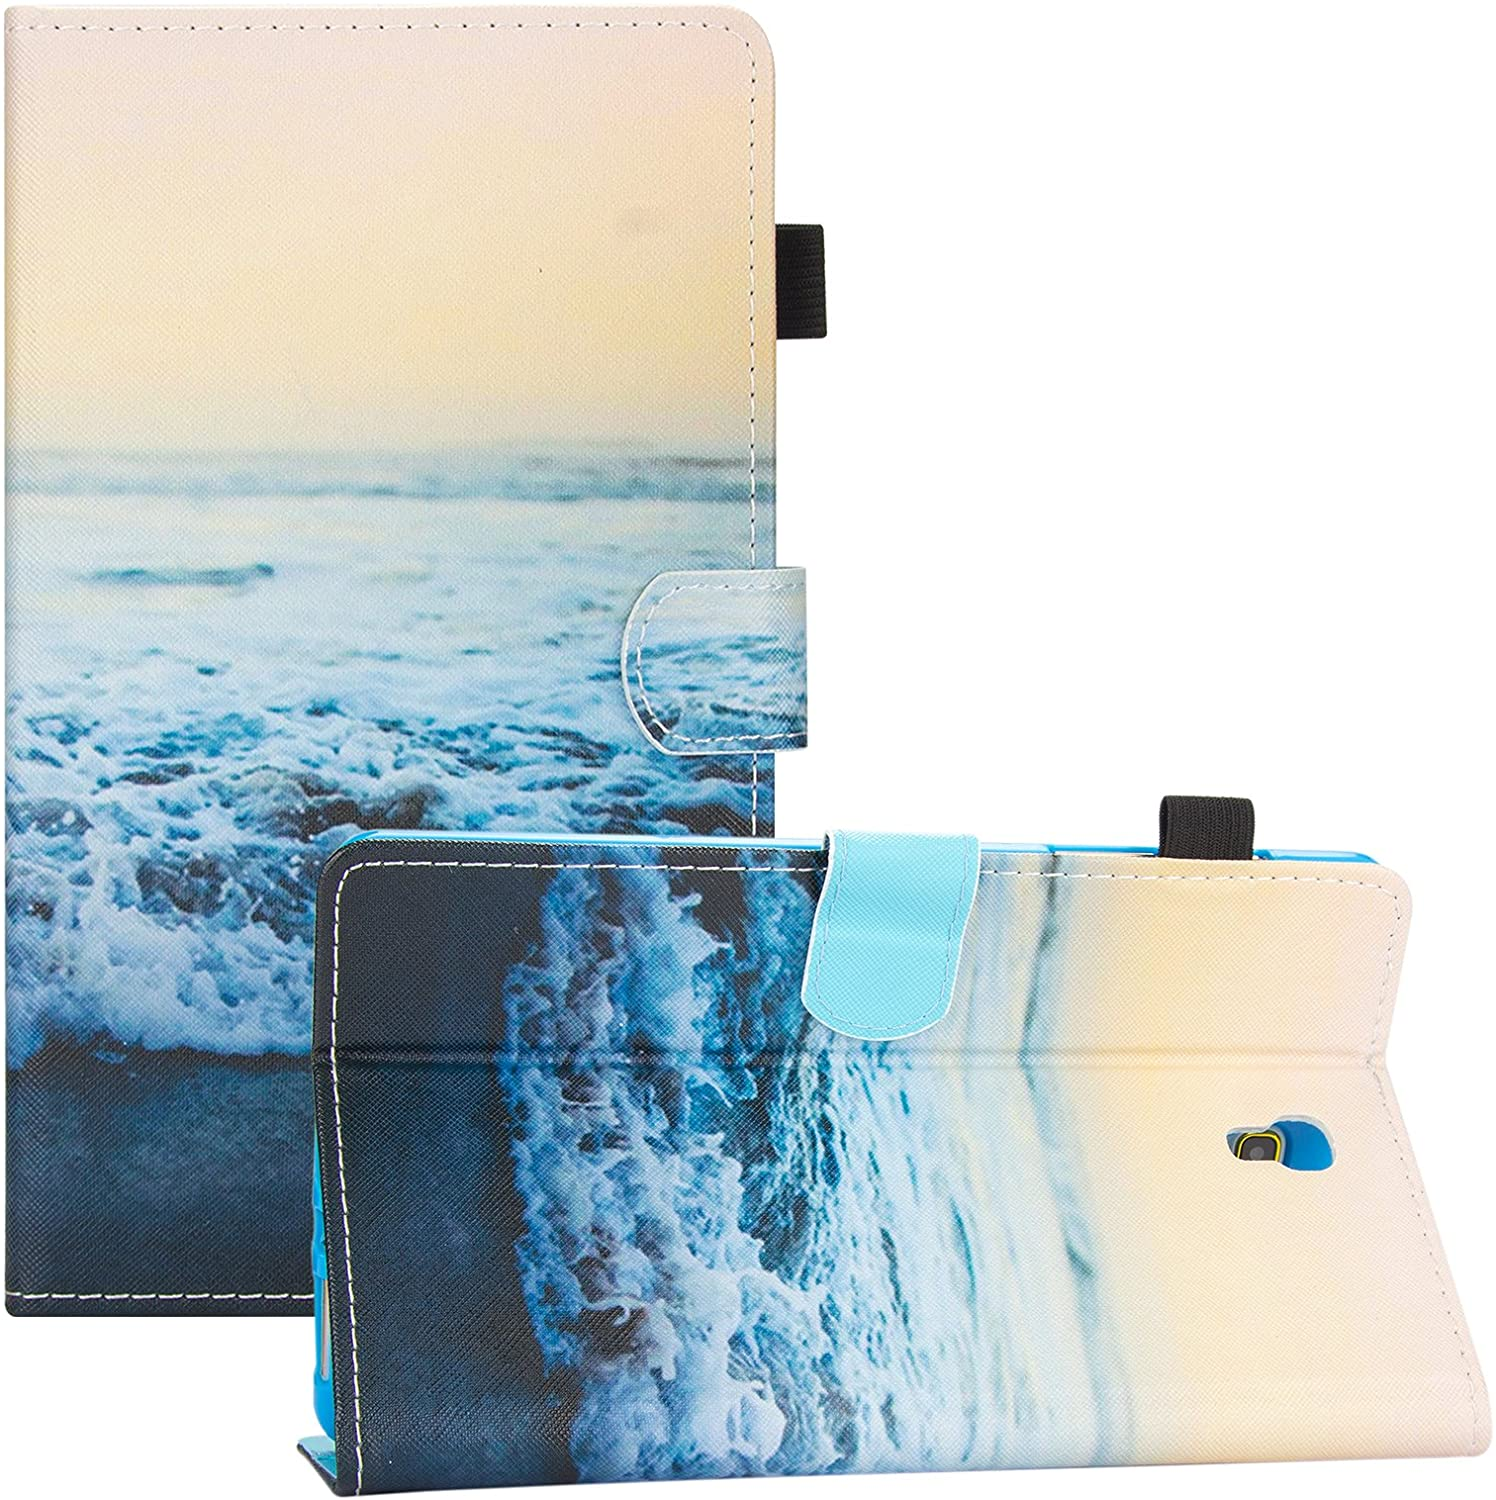 Galaxy Tab S 8.4 Case, Dteck Slim Fit PU Leather Folio Stand Wallet Case with [Stylus Slot] Protective Cover for Samsung Galaxy Tab S 8.4 inch Tablet 2014 (SM-T700/SM-T705), Peace Sea